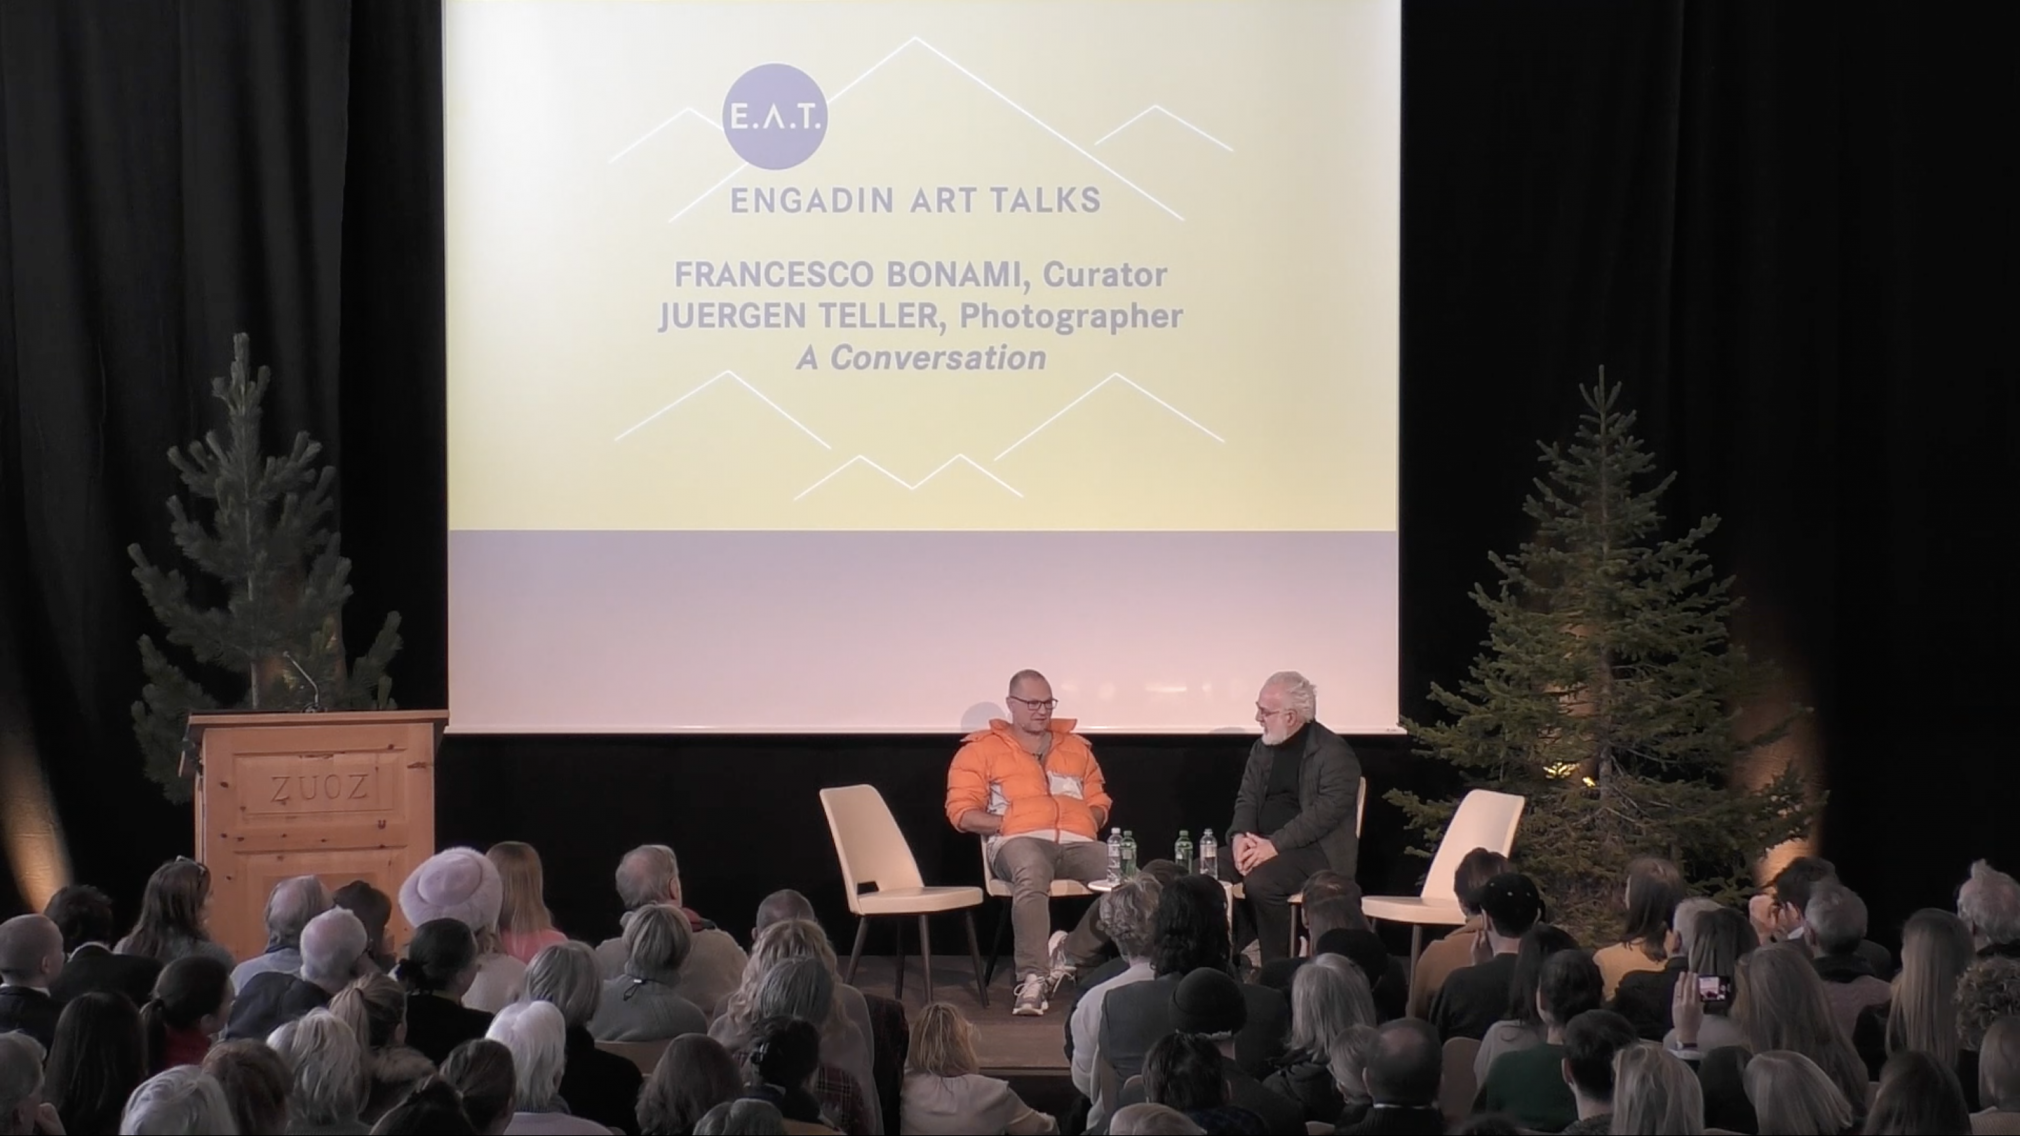 Juergen Teller in Conversation with Francesco Bonami, Engadin Art Talks: Grace & Gravity